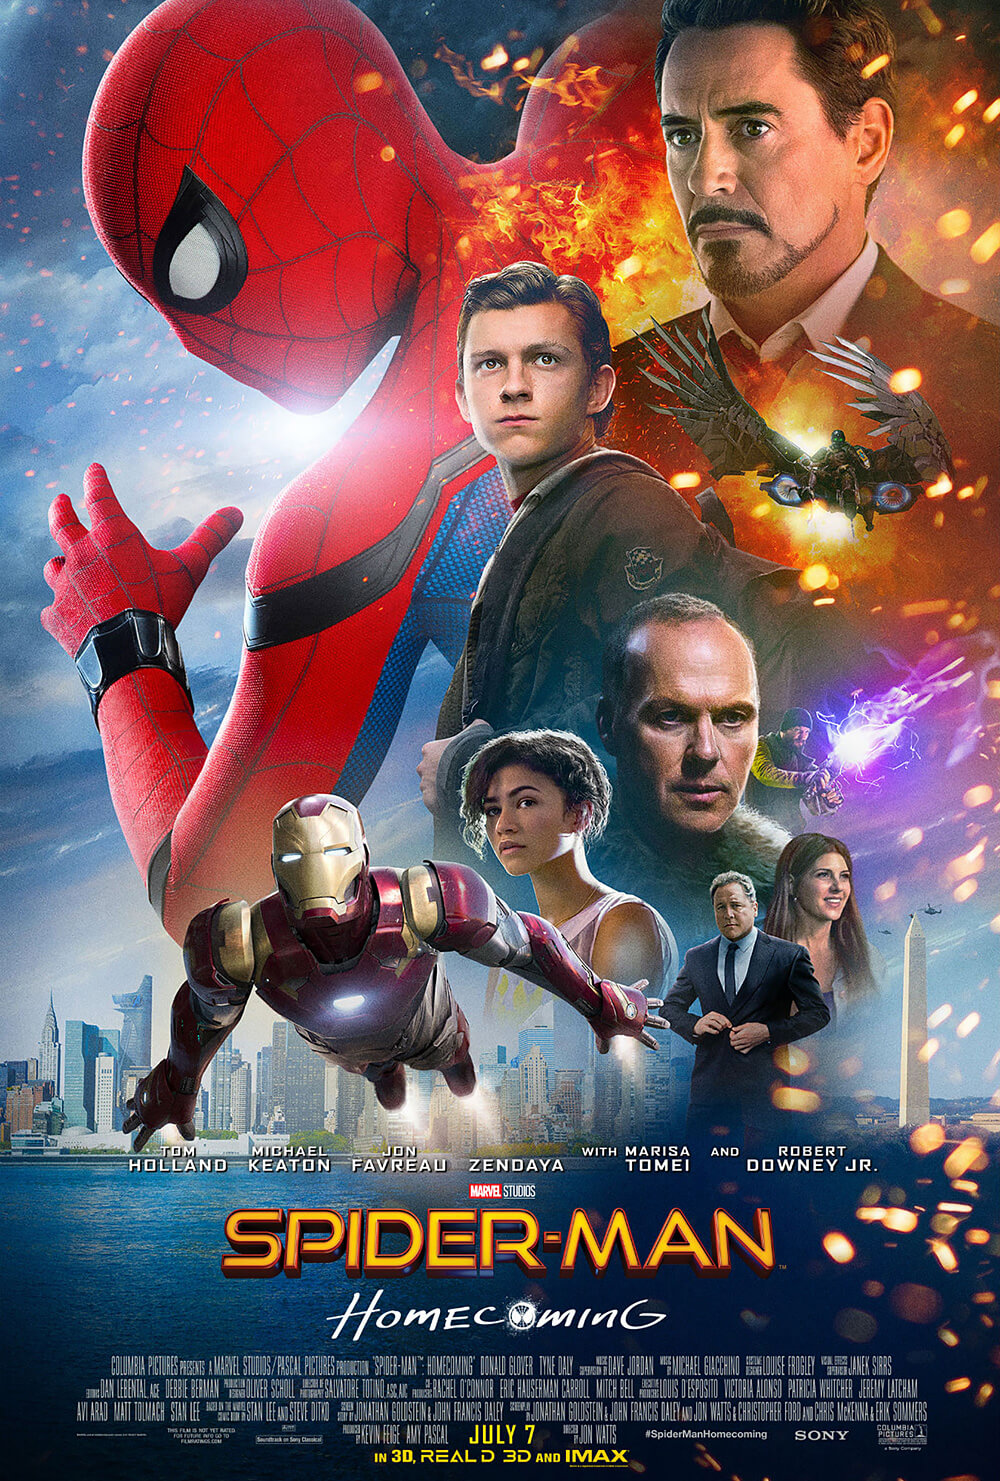 #7 Spider-Man: Homecoming - Hands down, full stop: best (live-action) Spider-Man movie ever. (Spiderverse was awesome!) Keaton's Vulture might be the best villain in the MCU. -